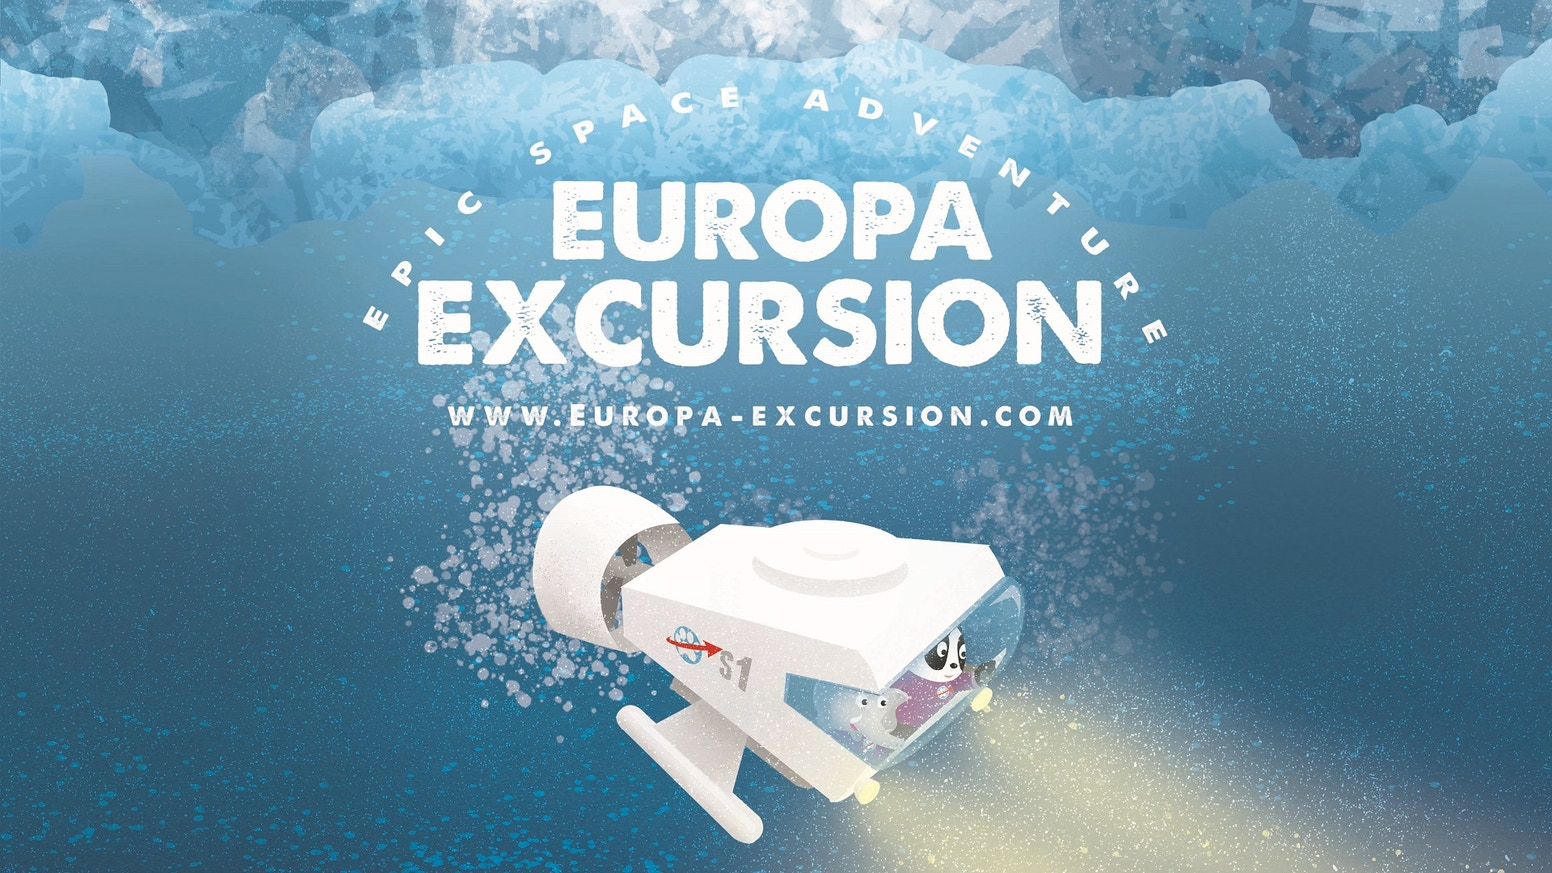 Your favorite space explorers are back! This time they're headed for Europa to rescue a submarine trapped beneath the moon's icy crust.